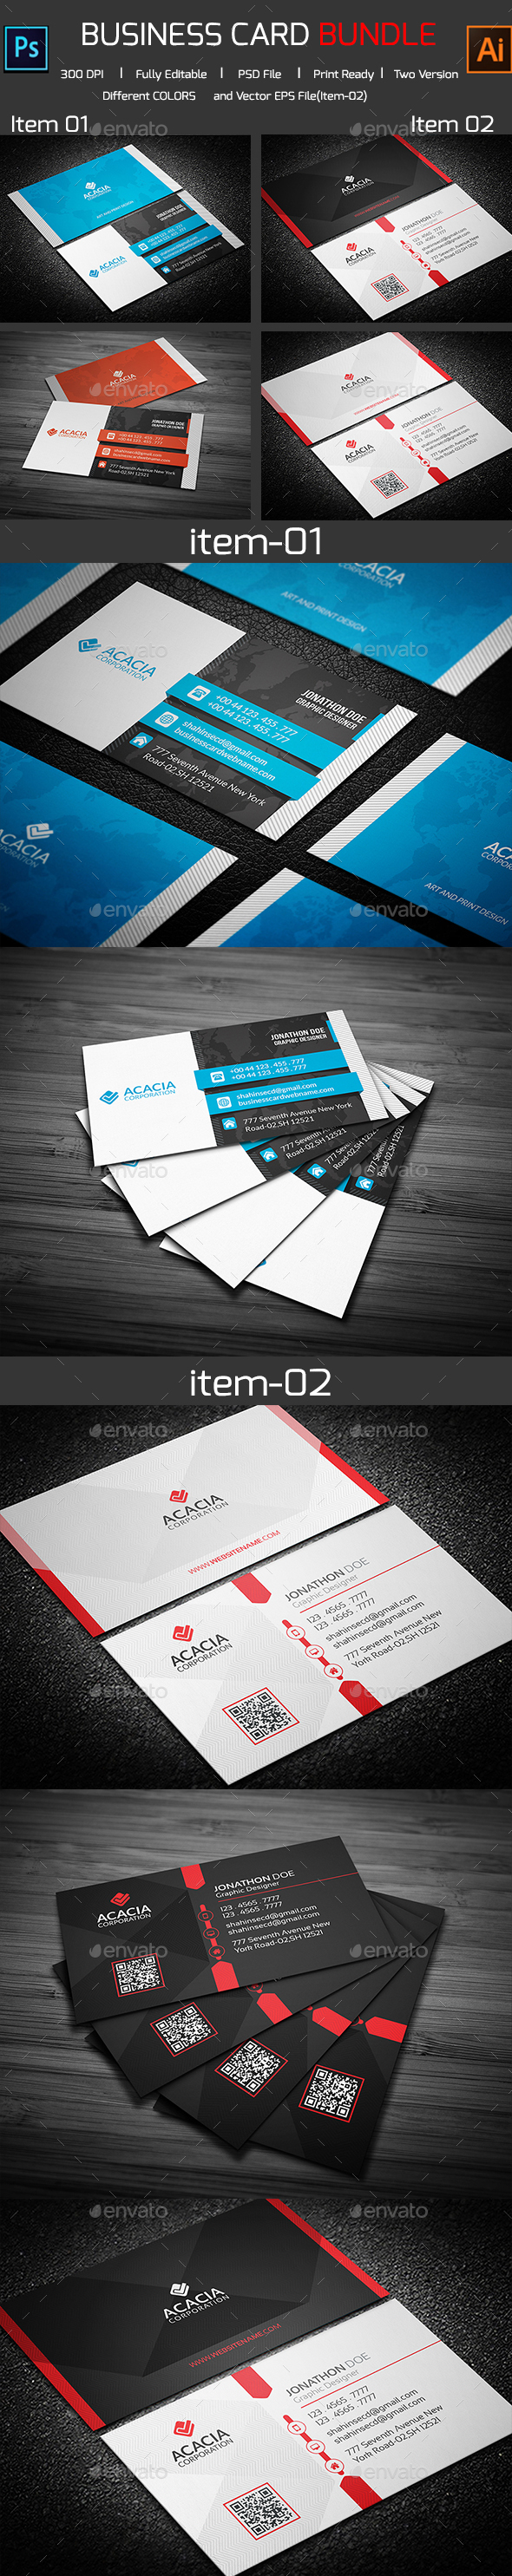 Bundle- 2 in 1 Business Card_08 - Corporate Business Cards